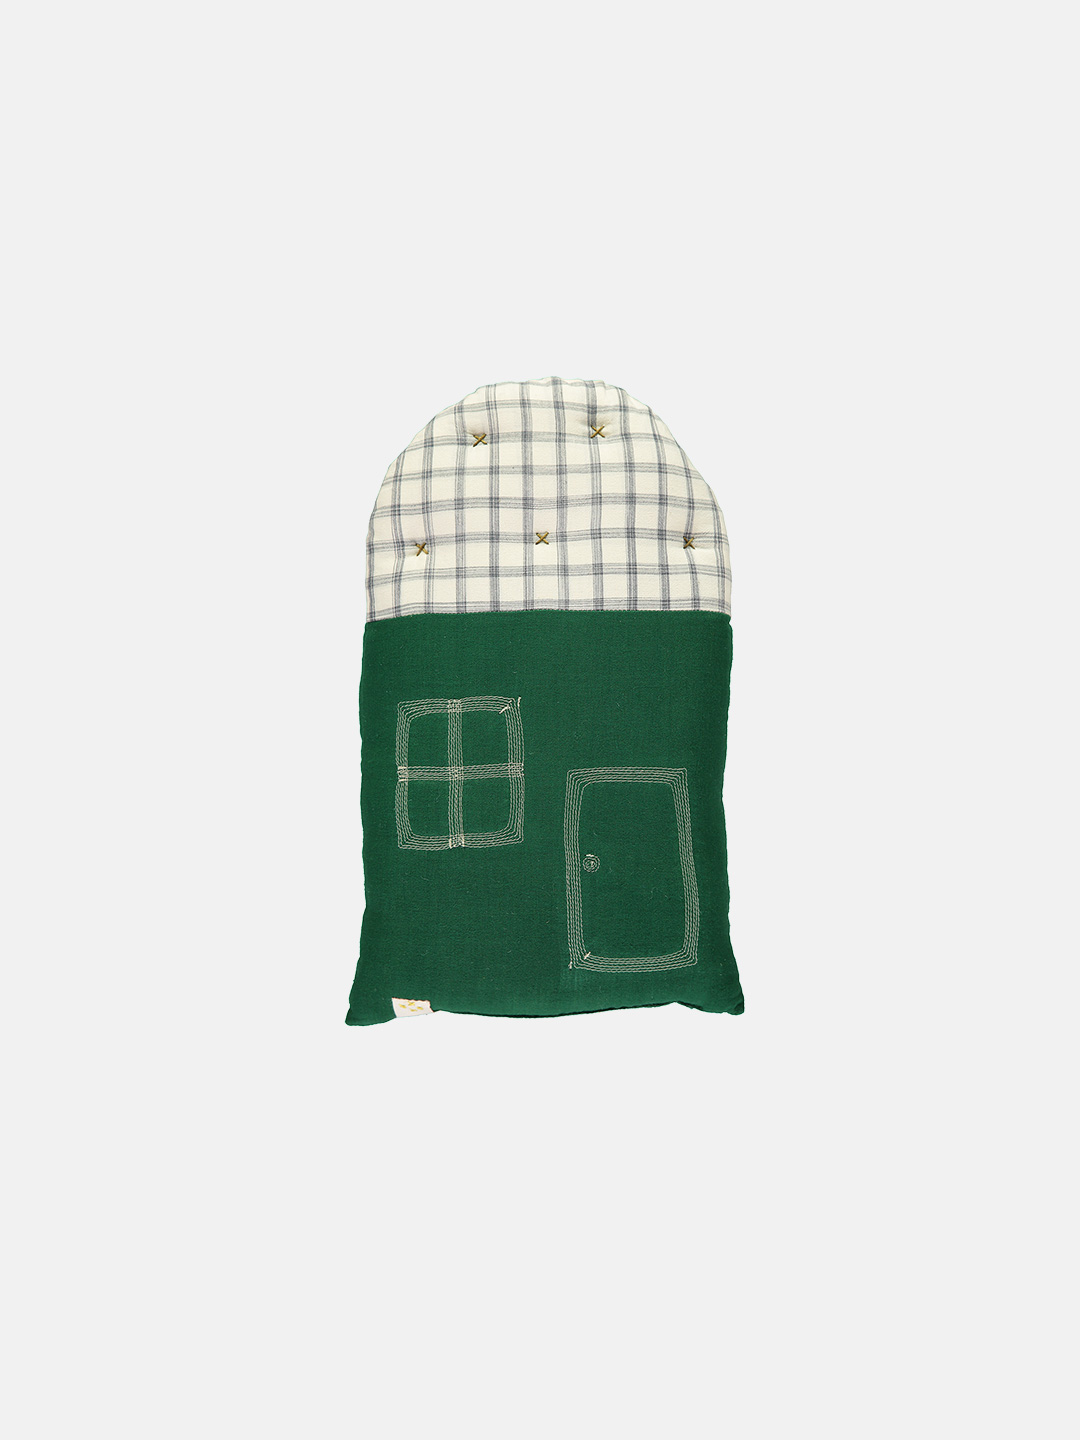 Small House Cushion - Forest Green & Ivory Ikat